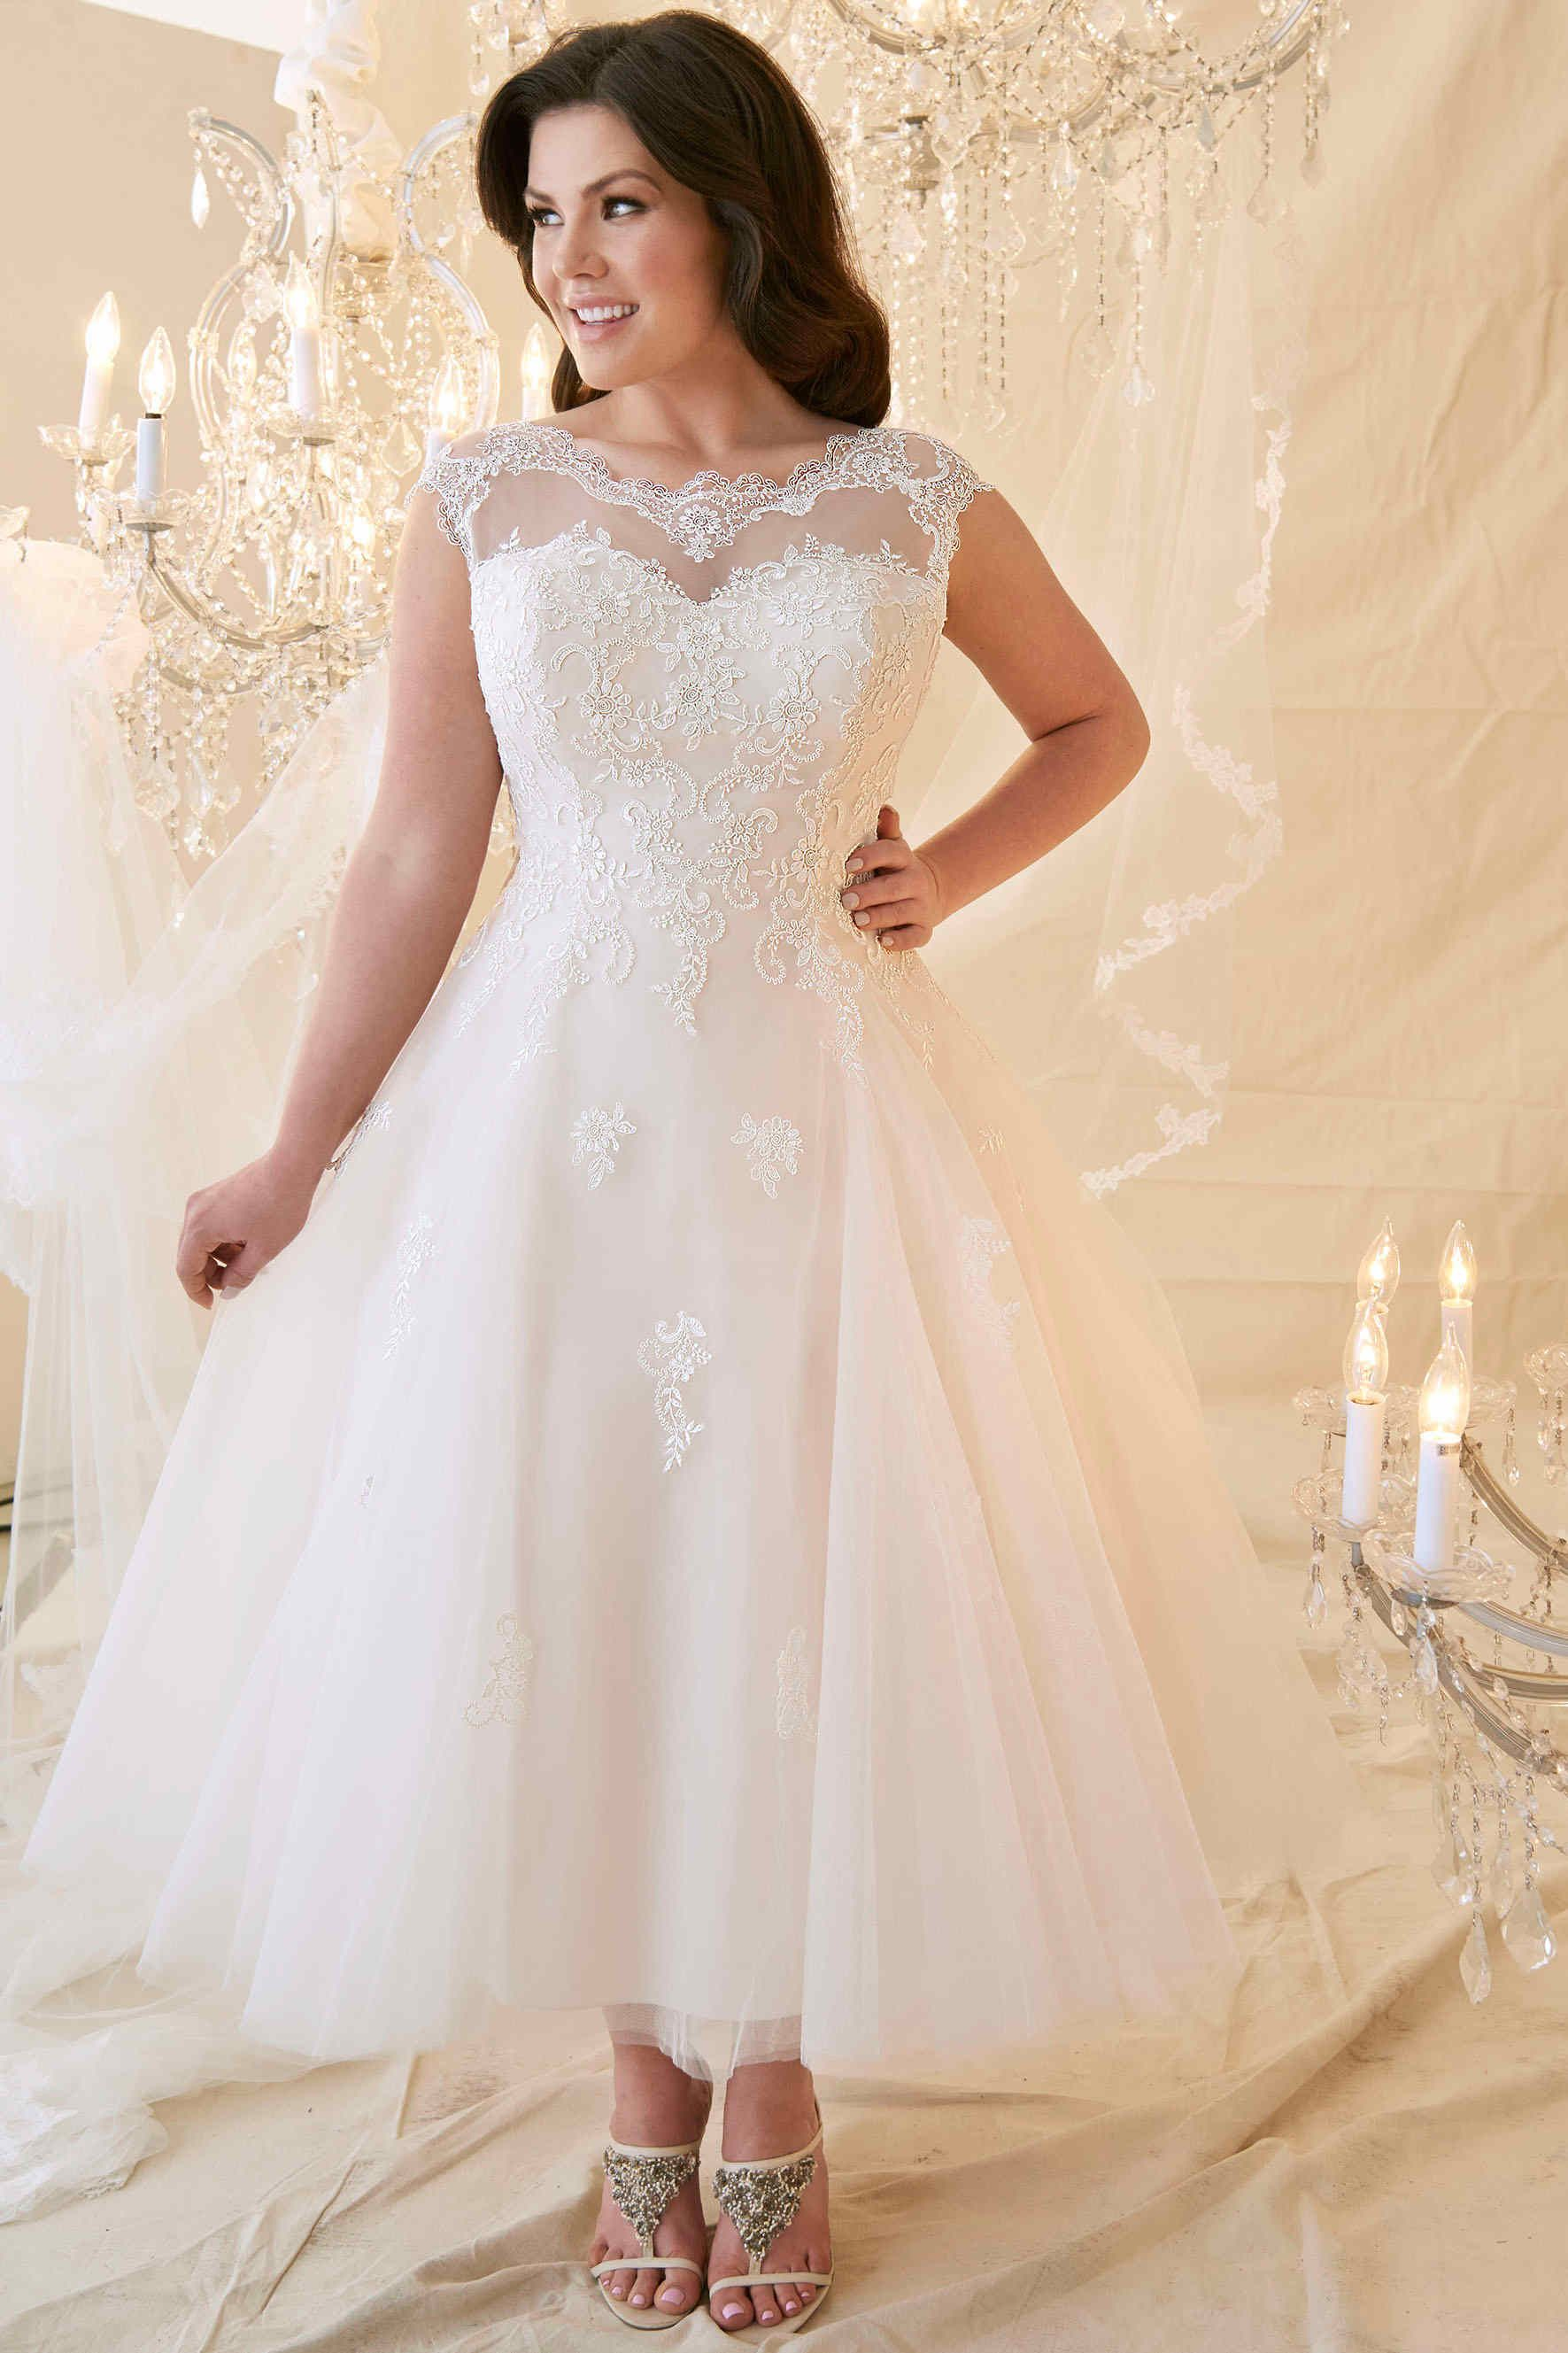 a43e8d93d821 $225.29 Ankle Length Cap Sleeve Lace Bodice Wedding Dress www.ucenterdress.....  Made to measure & Free Shipping! Shop lace wedding dresses, off the  shoulder ...